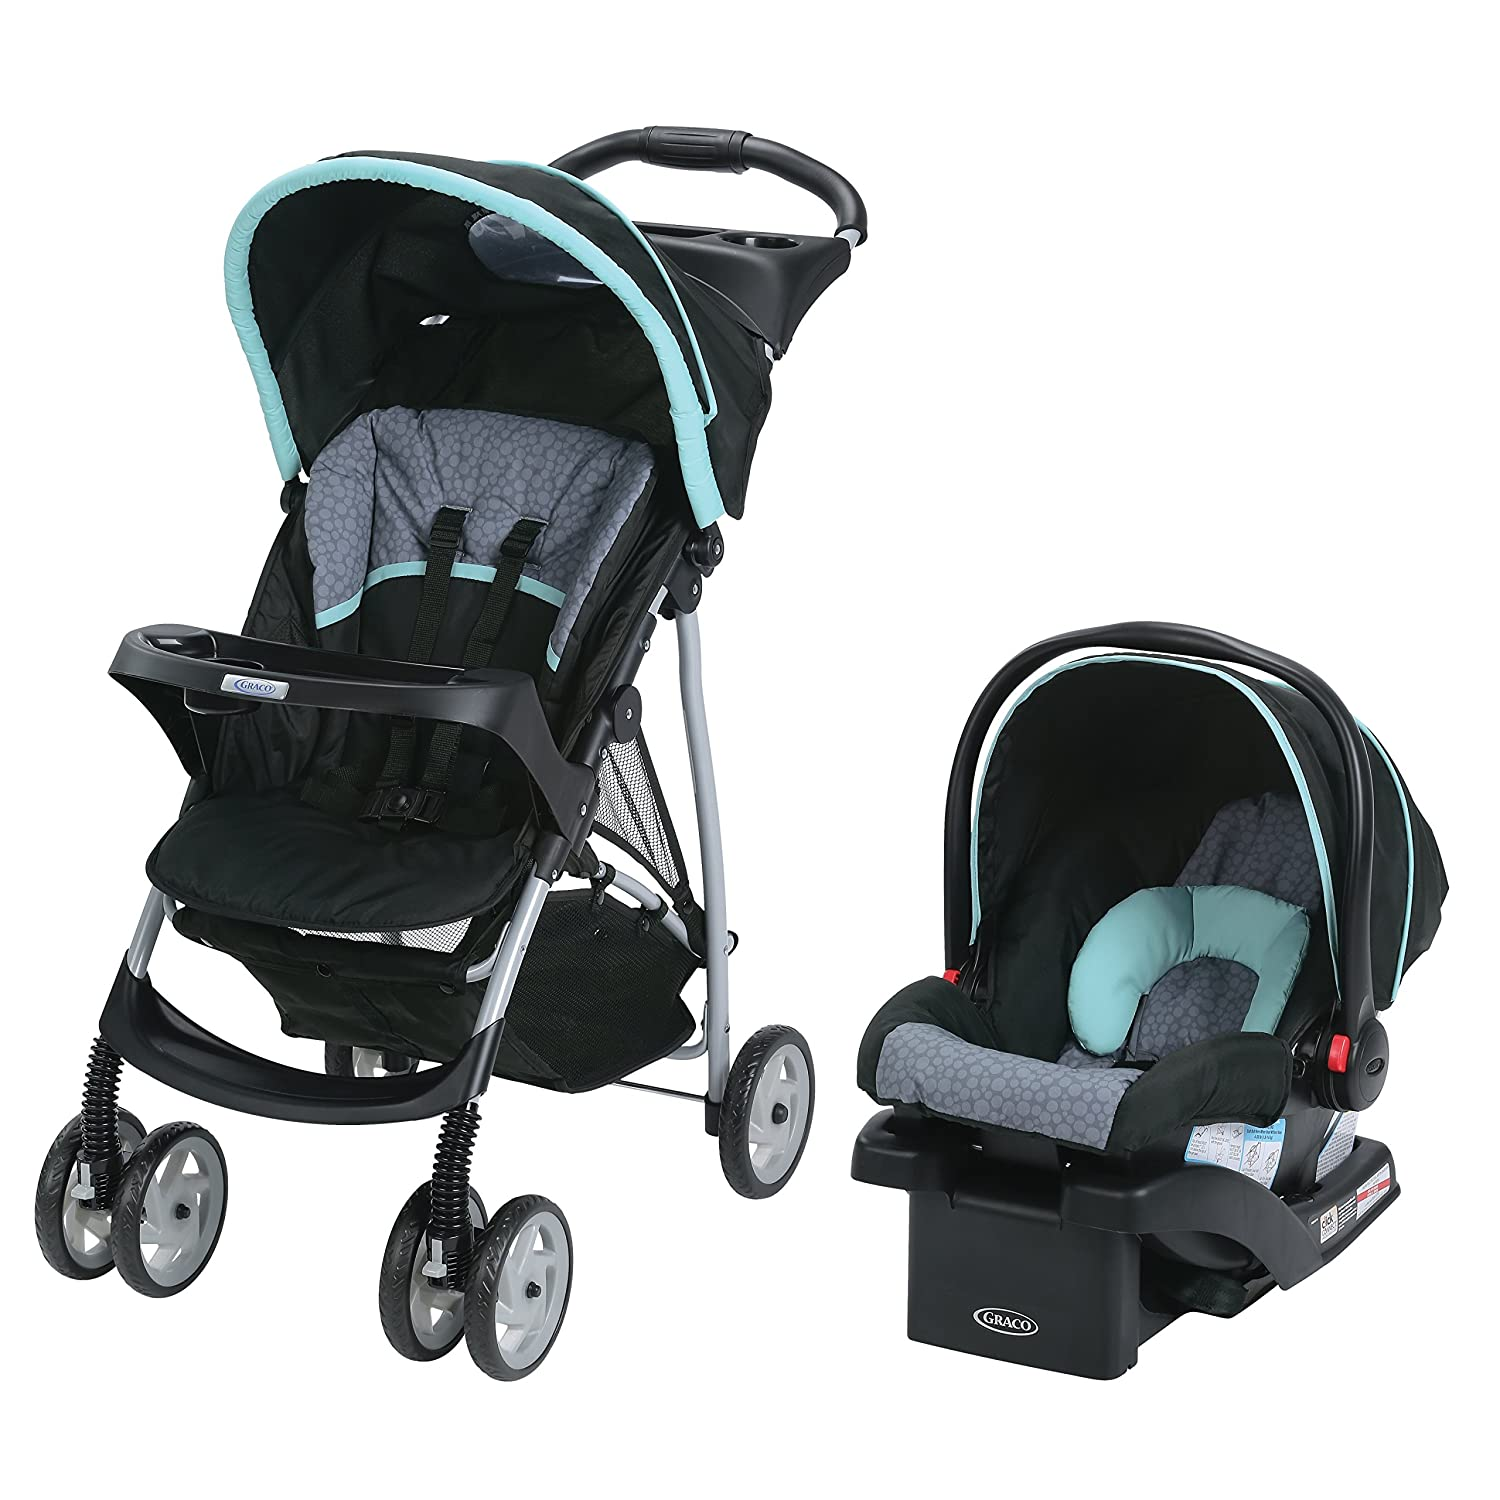 LiteRider travel system (Sully)